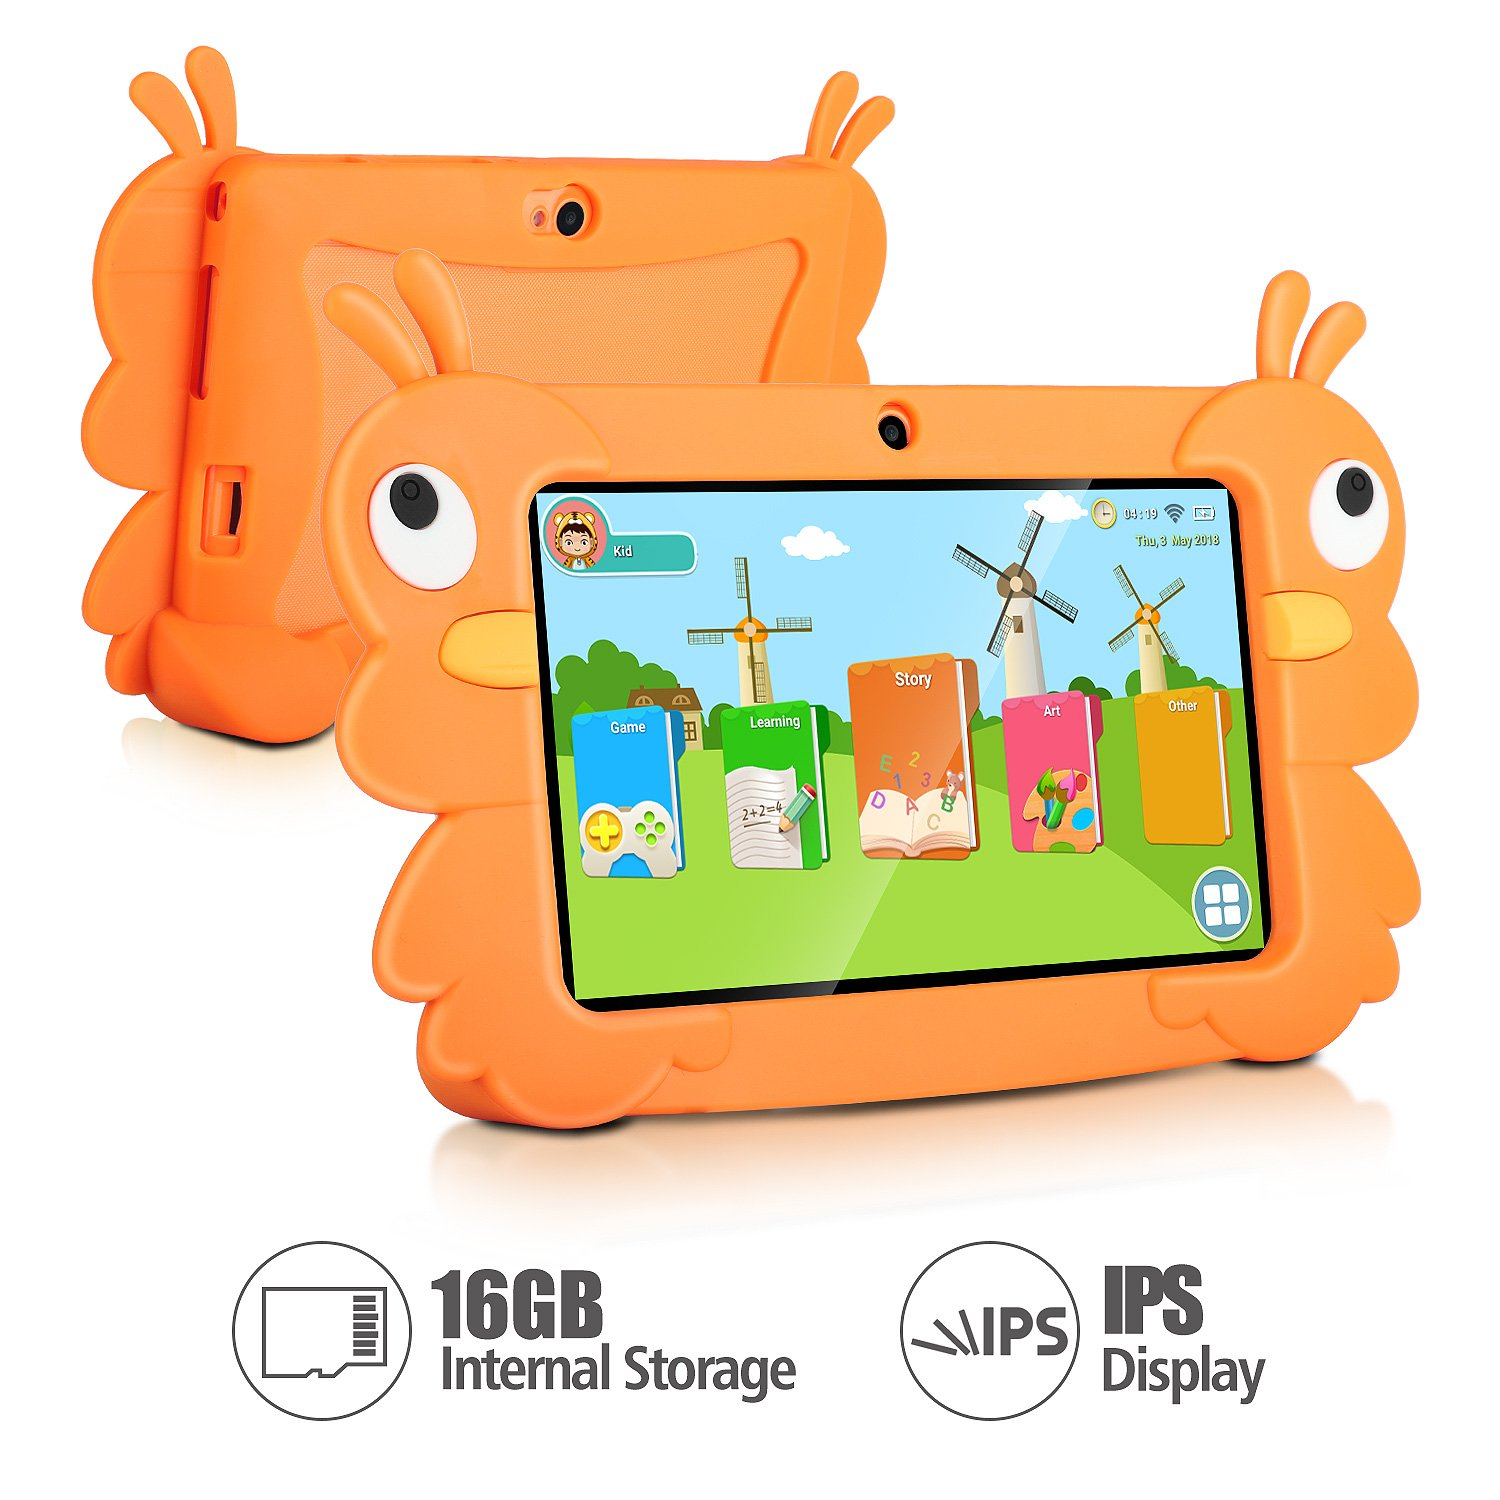 7 Inch Kids Tablet PC Quad Core 1024x600 IPS Eye Protect Display 1GB RAM 16GB Storage Bluetooth WiFi Dual Camera with Kids Educational Software Parental Control (Orange) by TOPELOTEK